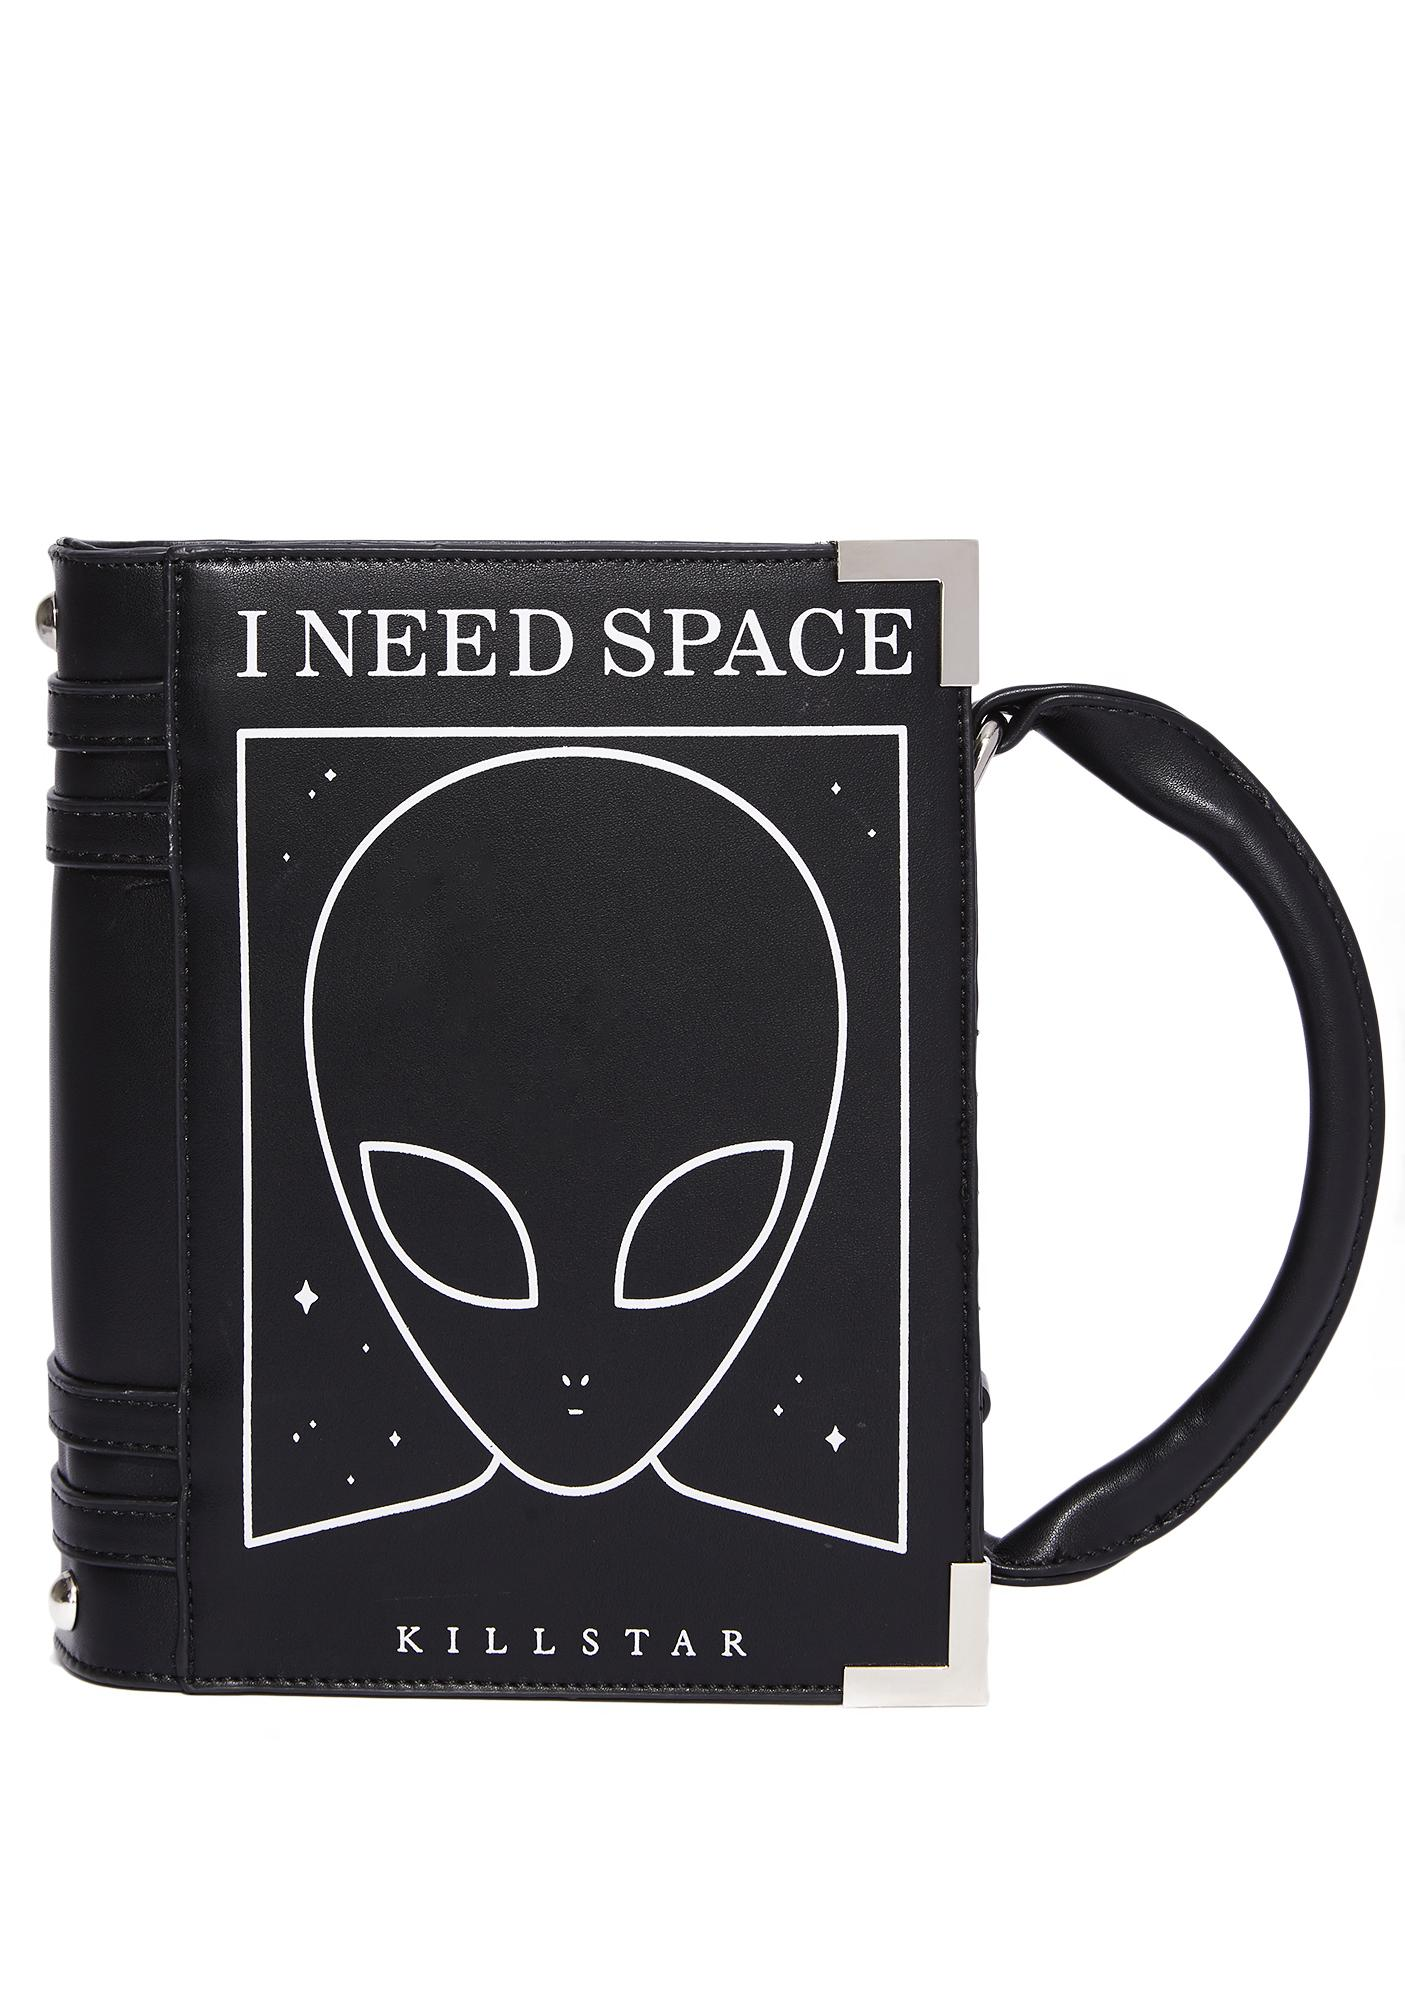 Killstar Need Space Handbag